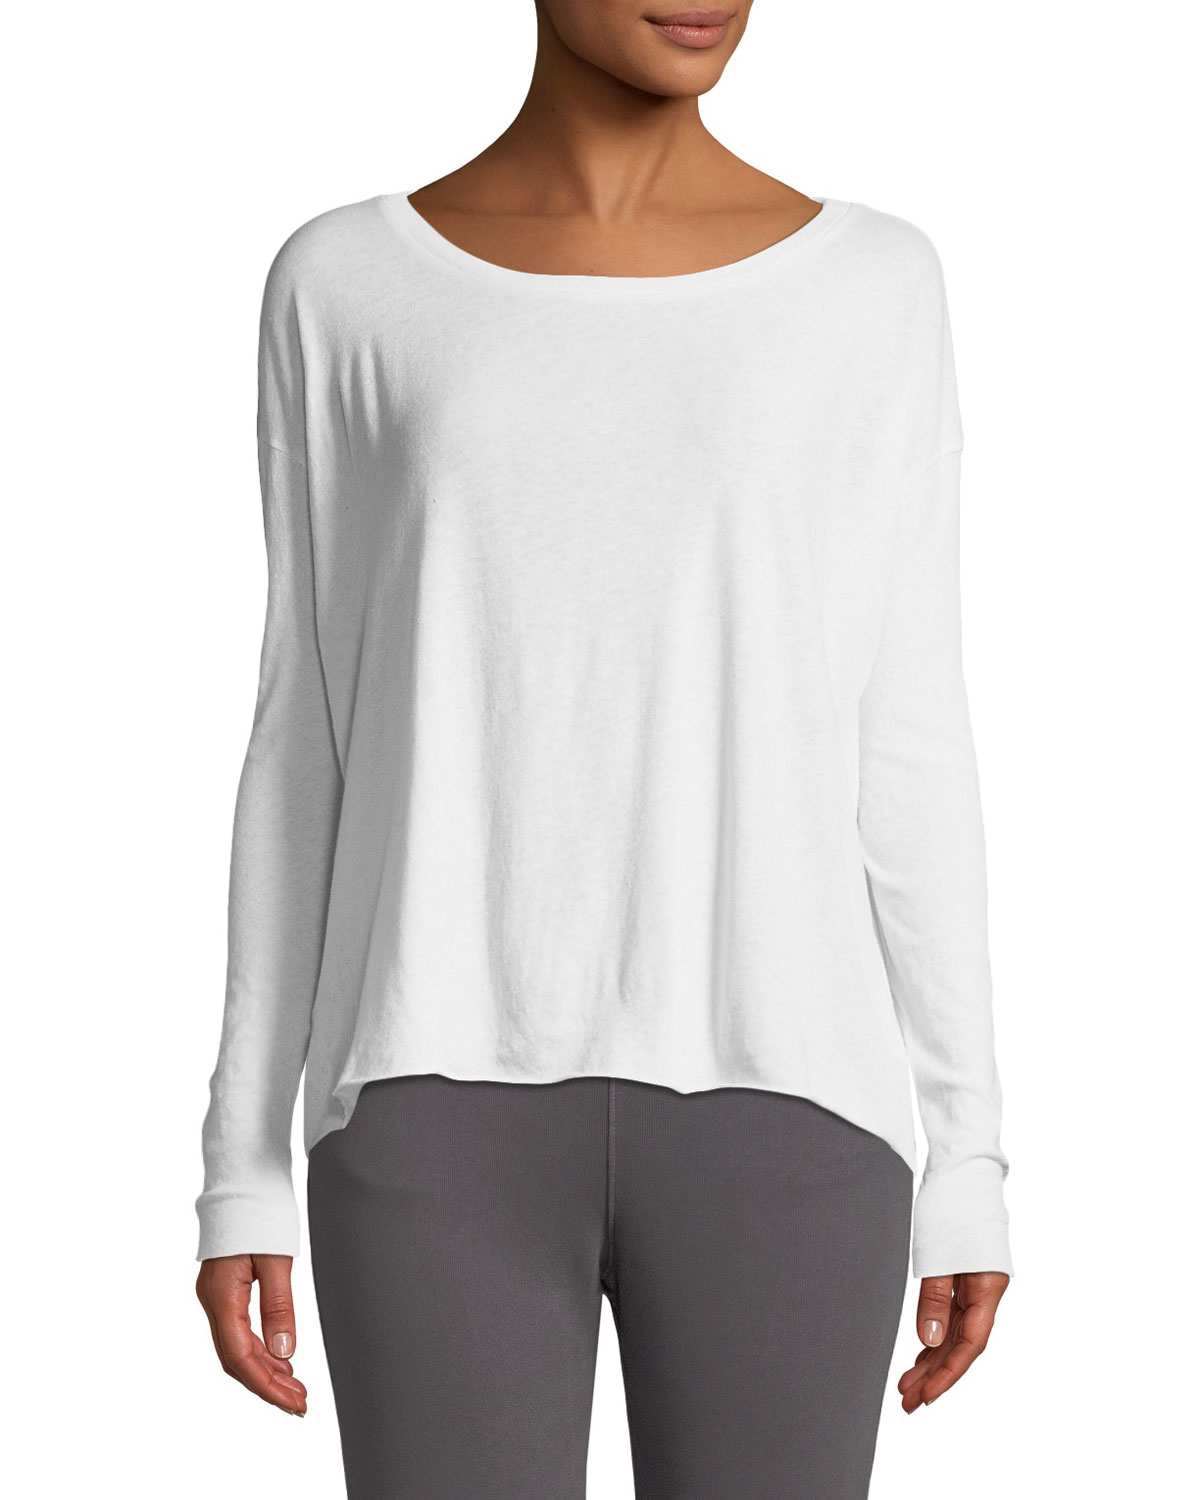 FRANK & EILEEN TEE LAB Core Cotton Long-Sleeve Tee in White